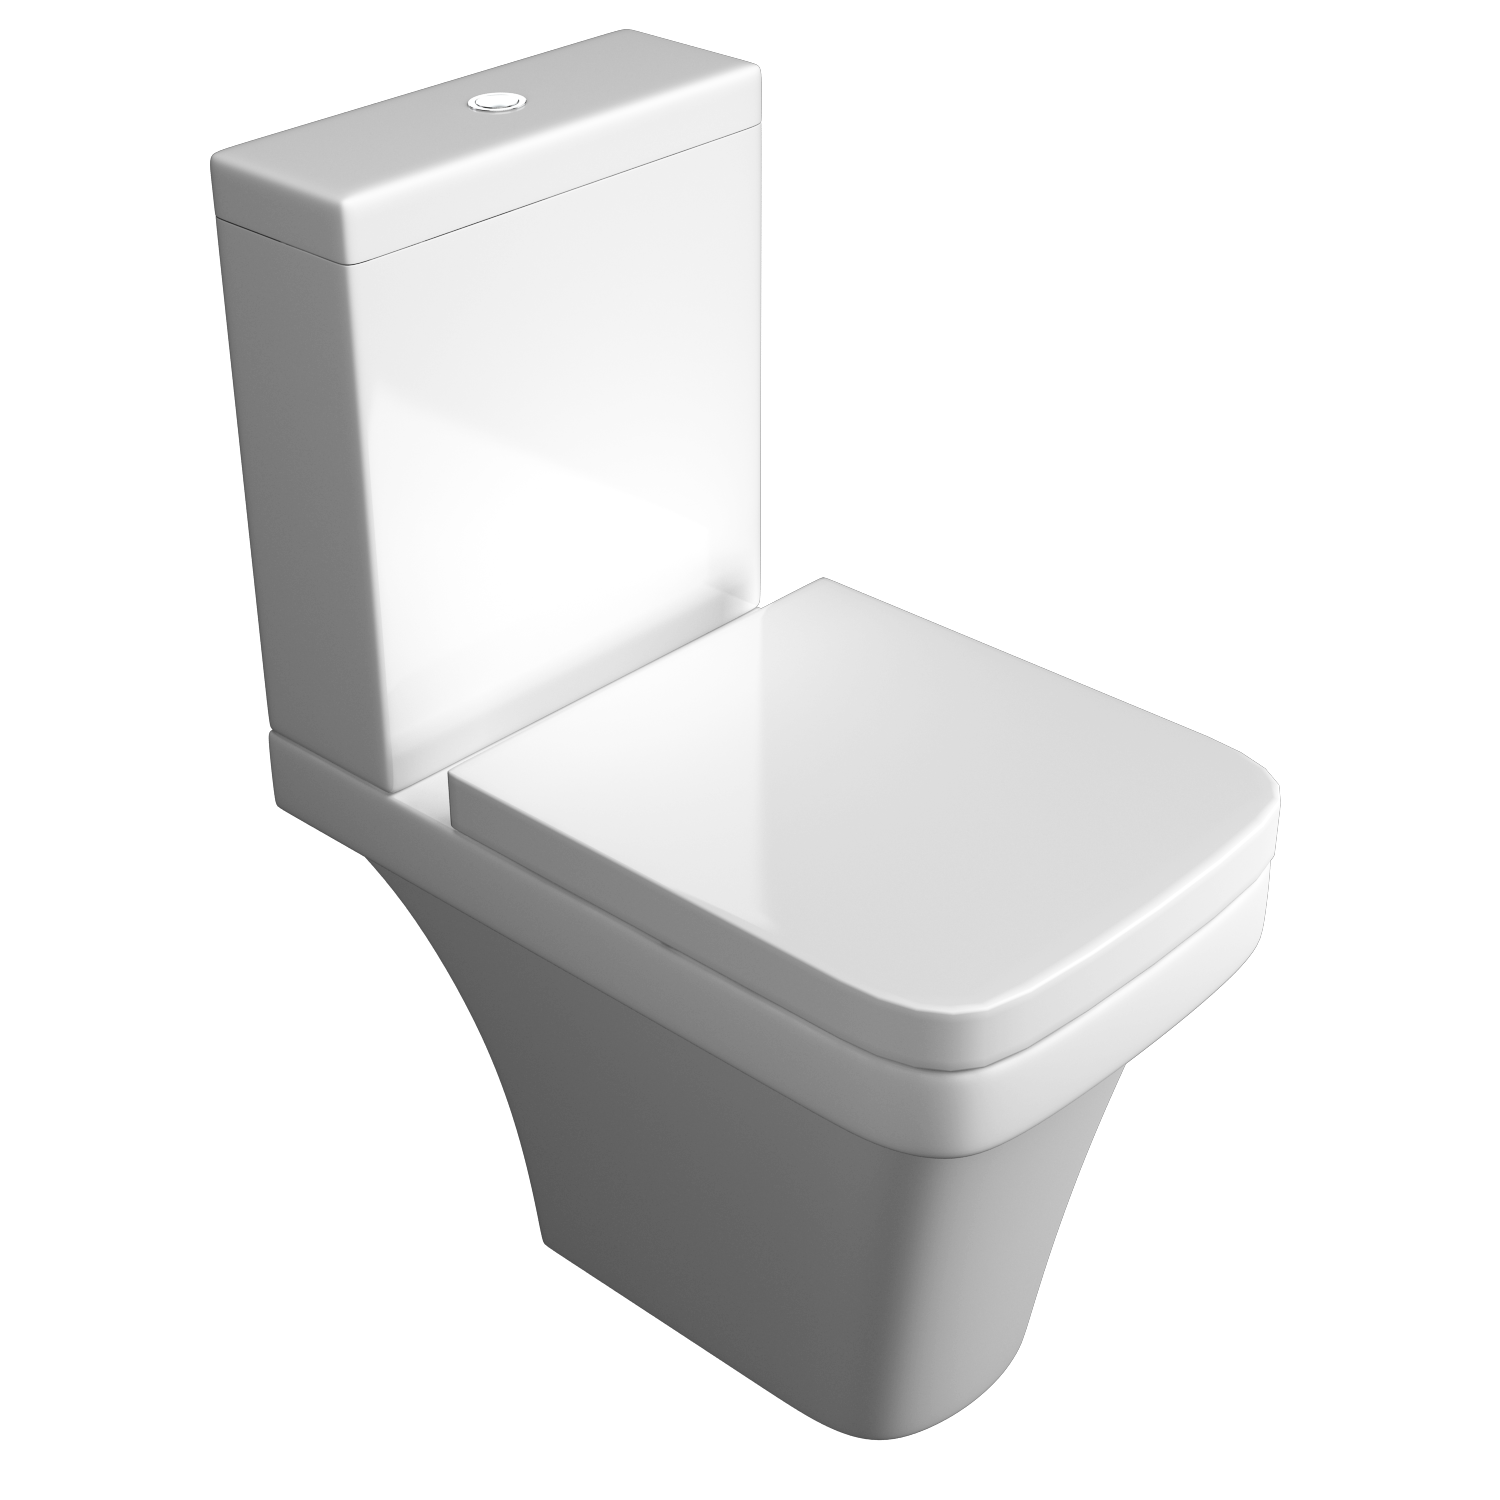 K-Vit Sicily Raised Comfort Height C/C WC Pan & Cistern (Seat Not Included)